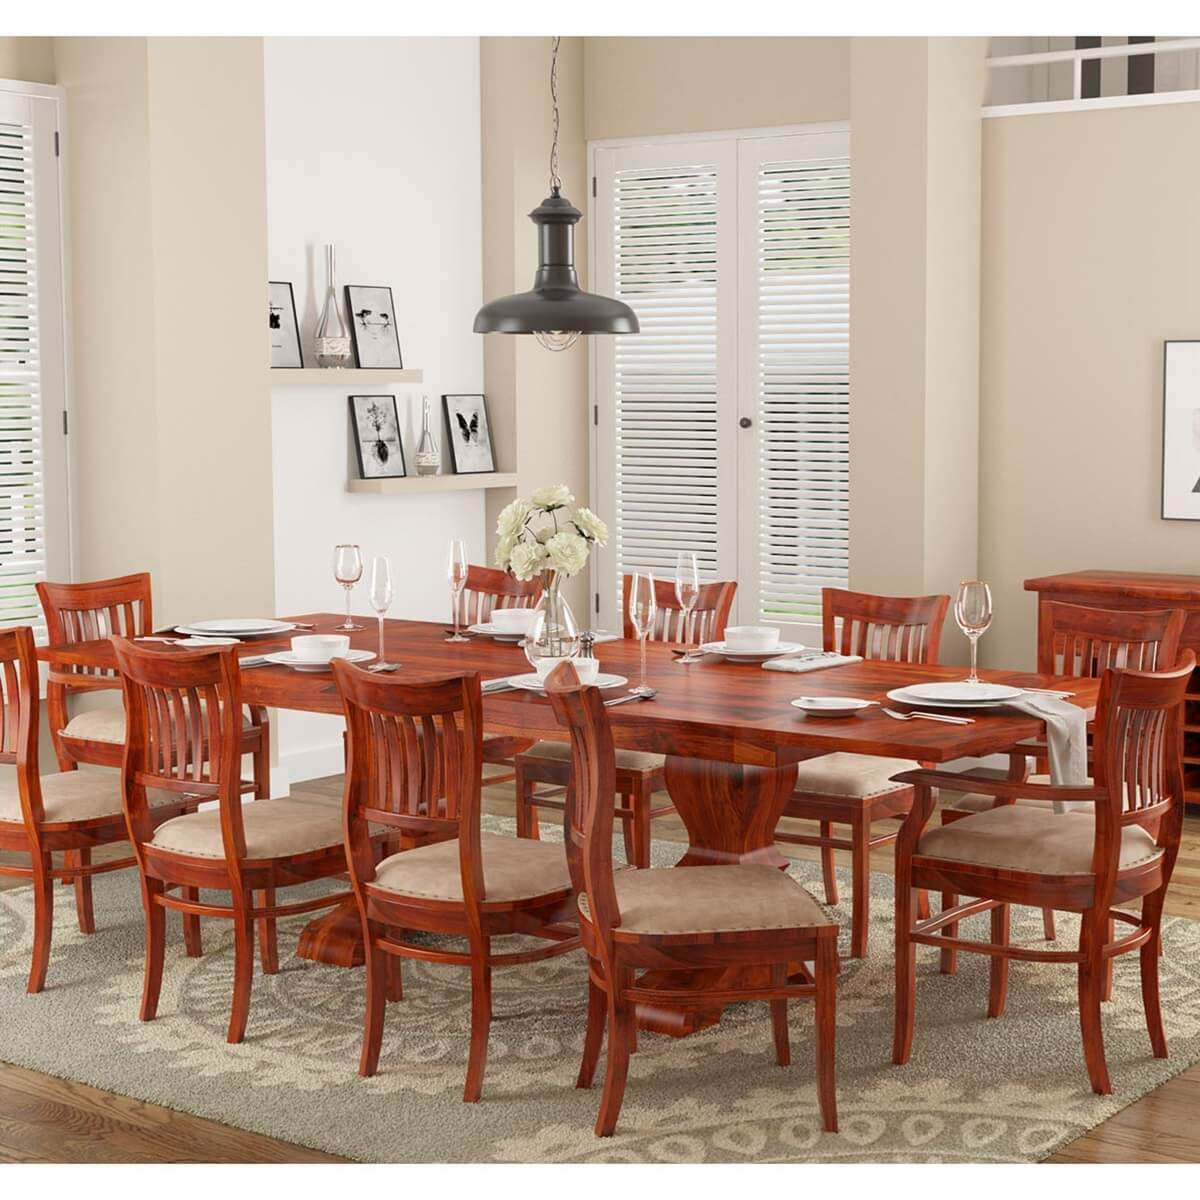 Chantilly Chic Solid Wood Extendable Dining Table And